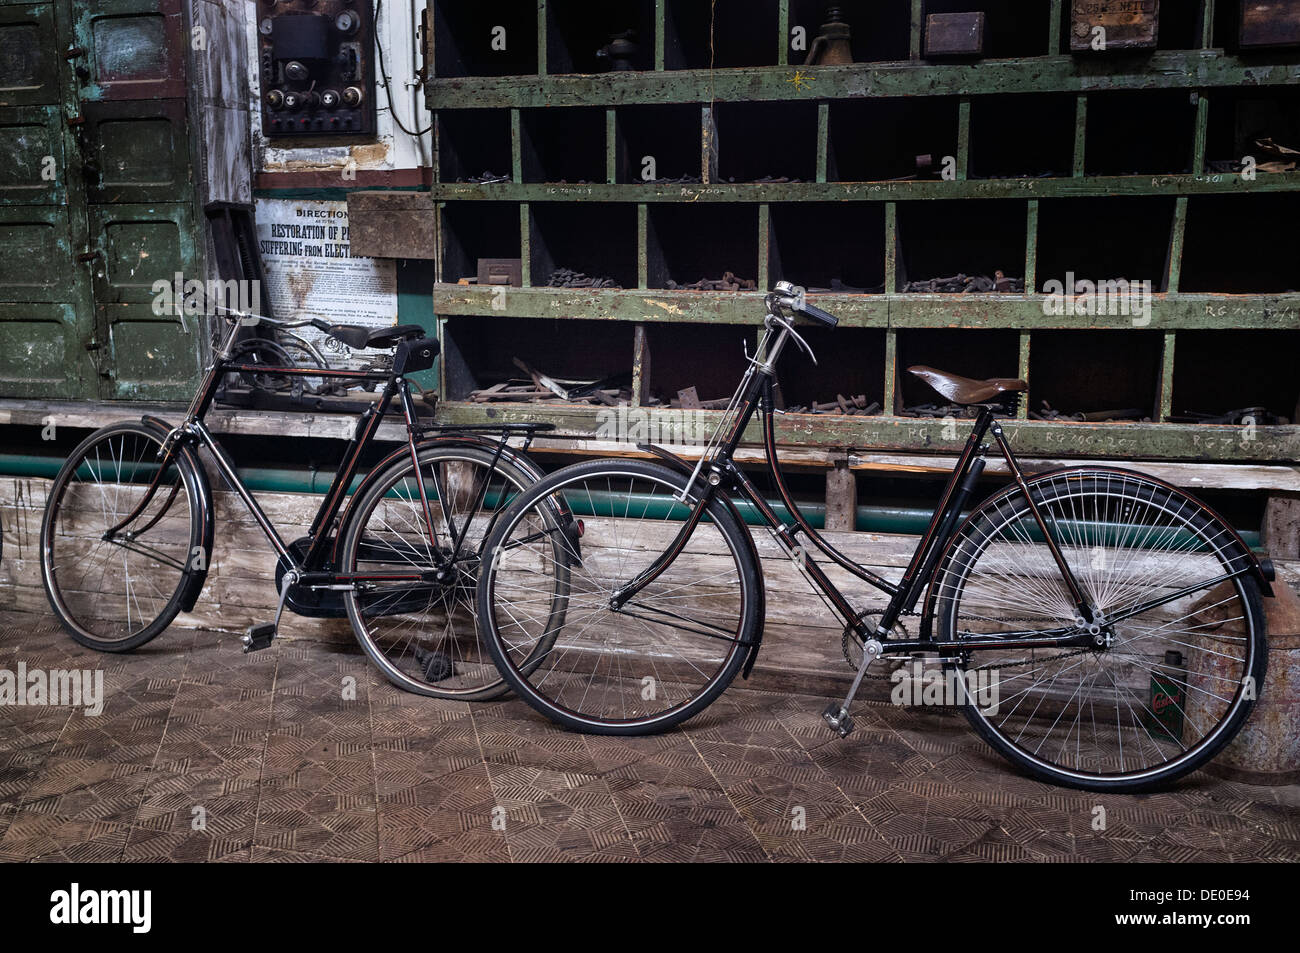 Old fashioned upright bicycles - Stock Image